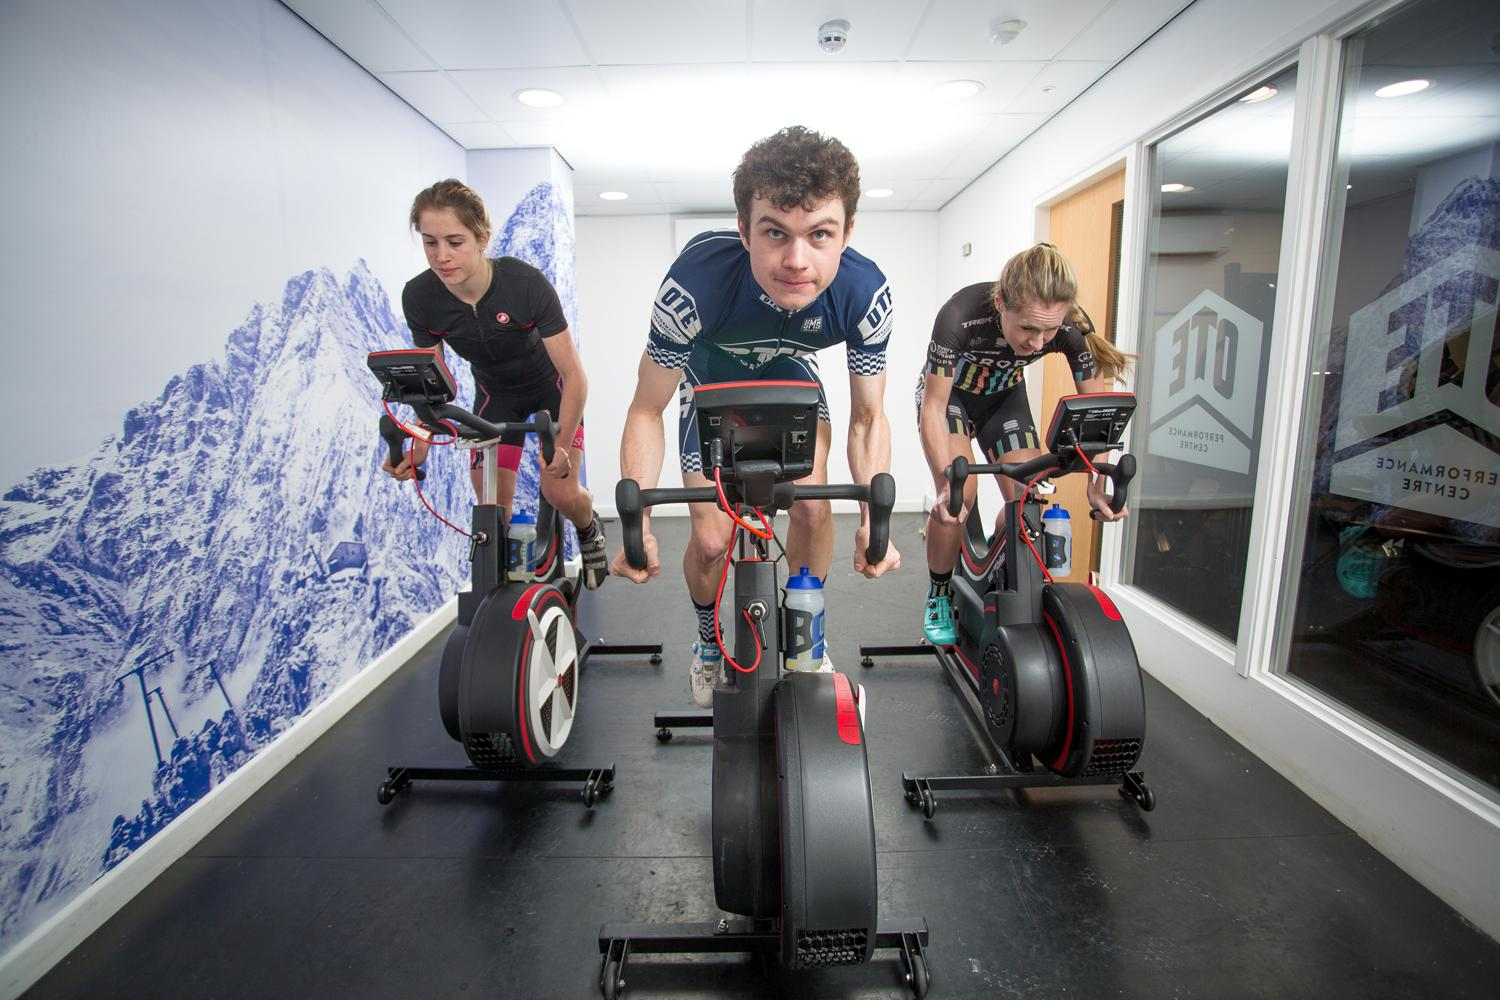 Wattbike's performance computer enables the accurate measurement of over 40 parameters